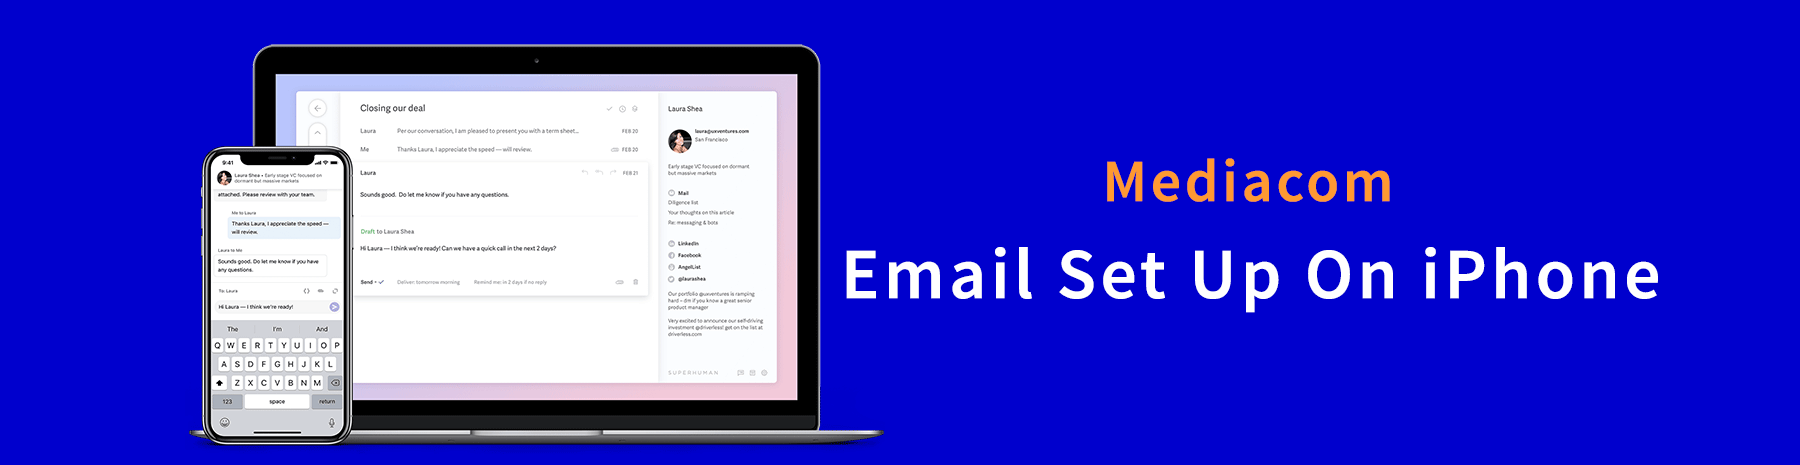 How-To-Set-Up-Mediacom-Email-On-iPhone-Mediacom-Email